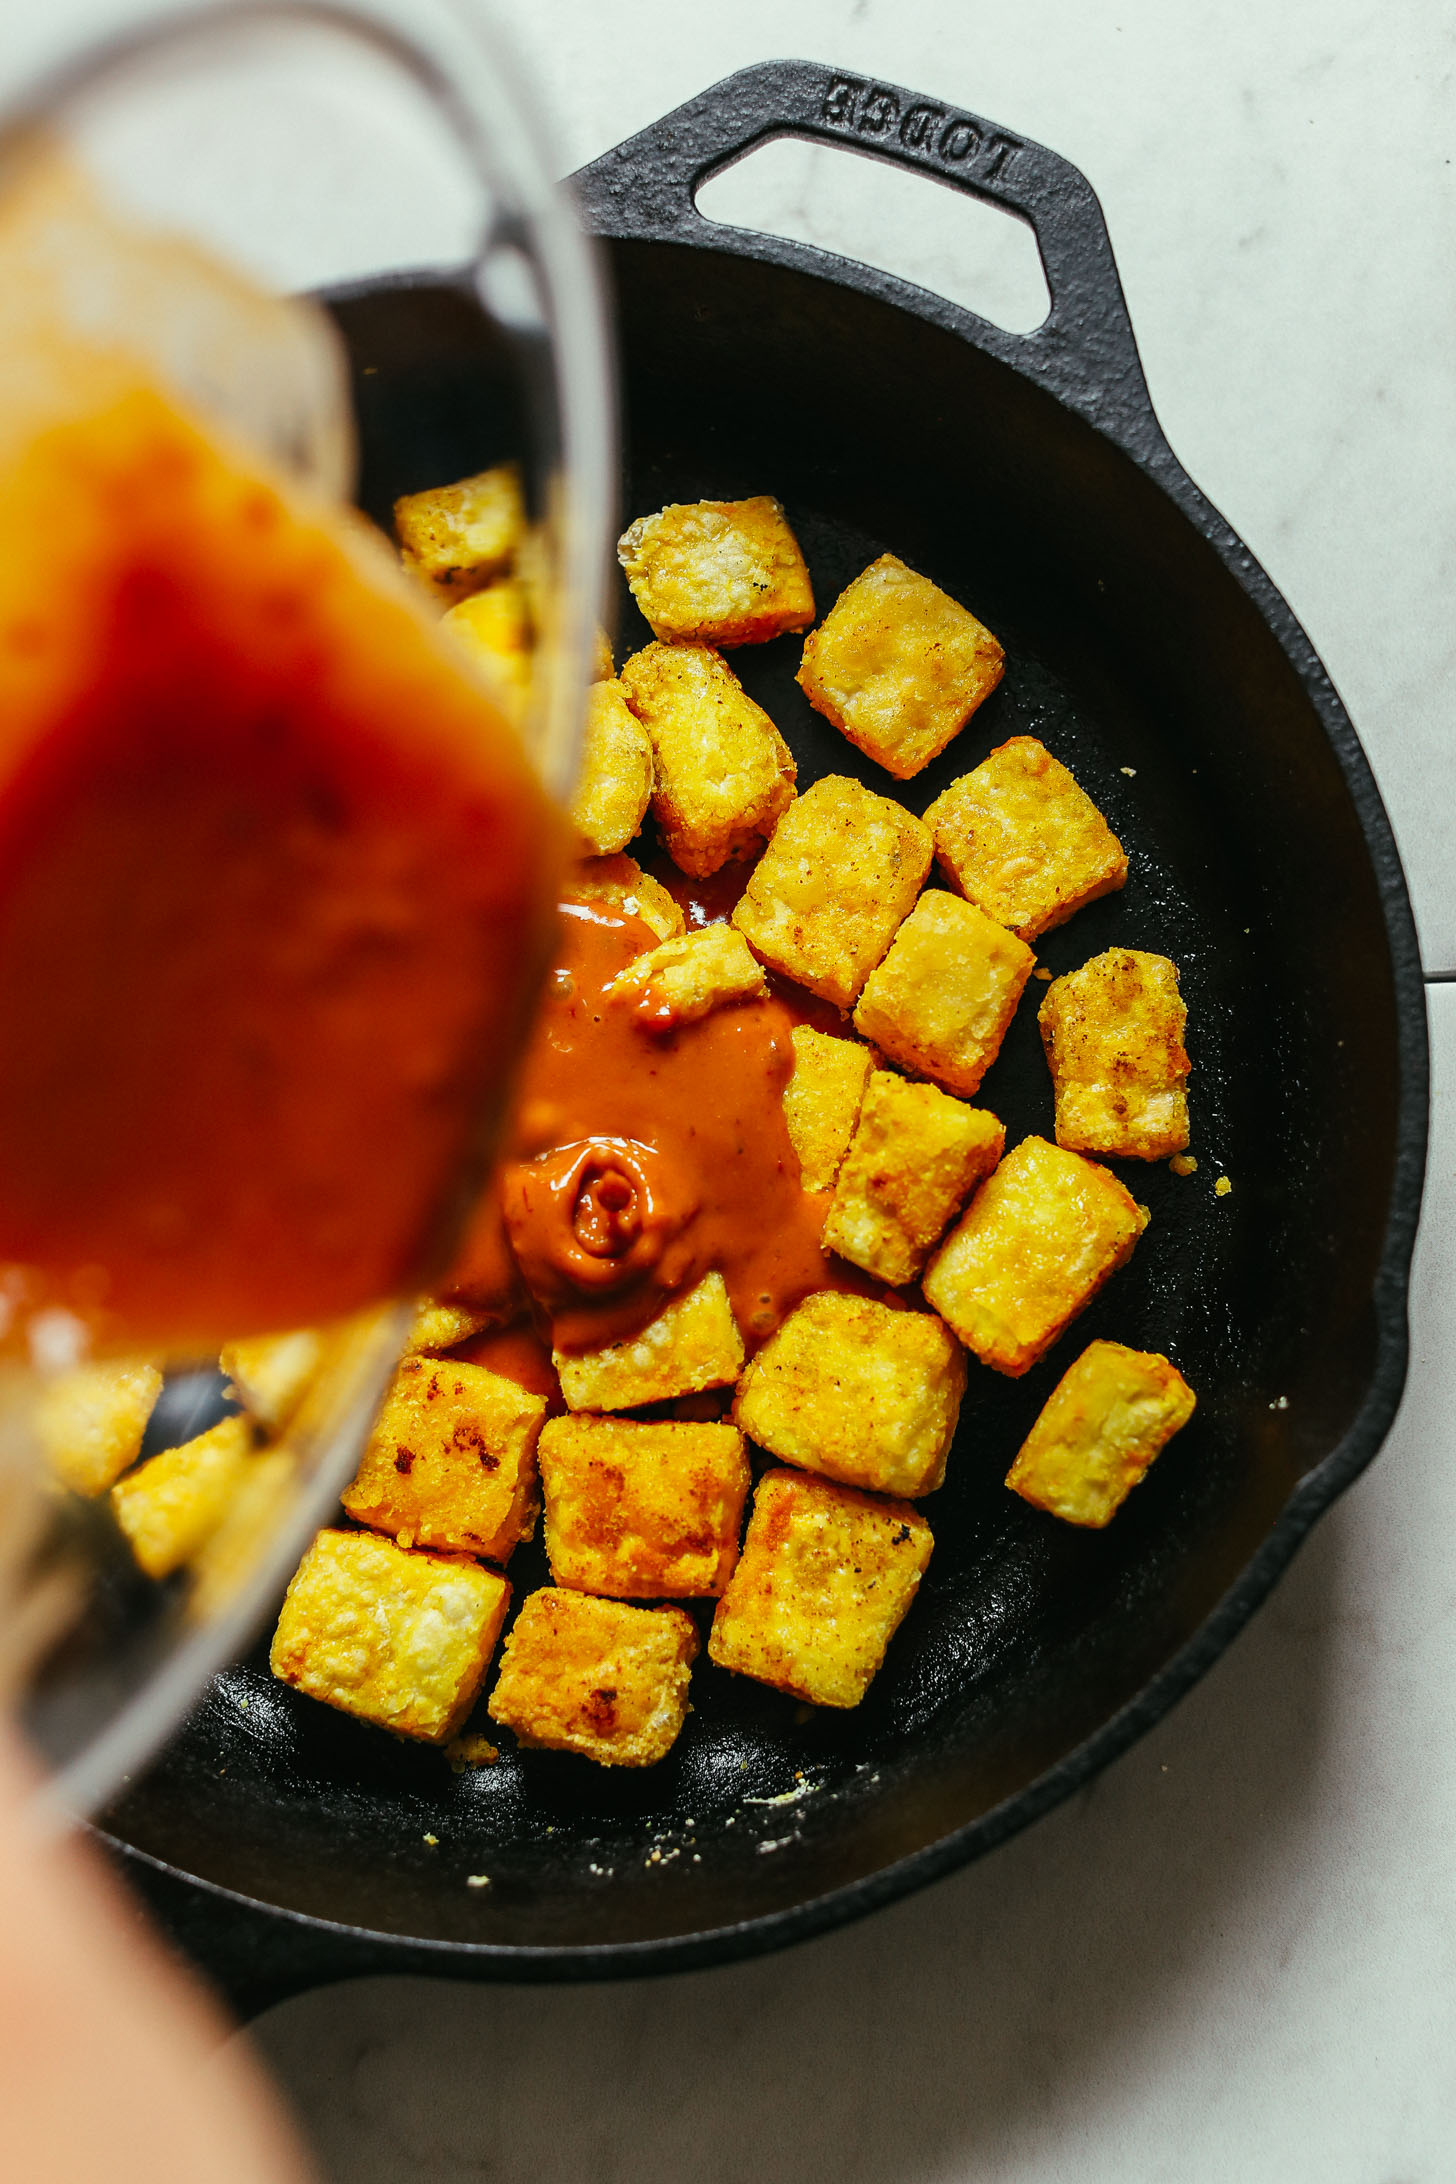 Pouring sauce into a skillet of cubed tofu